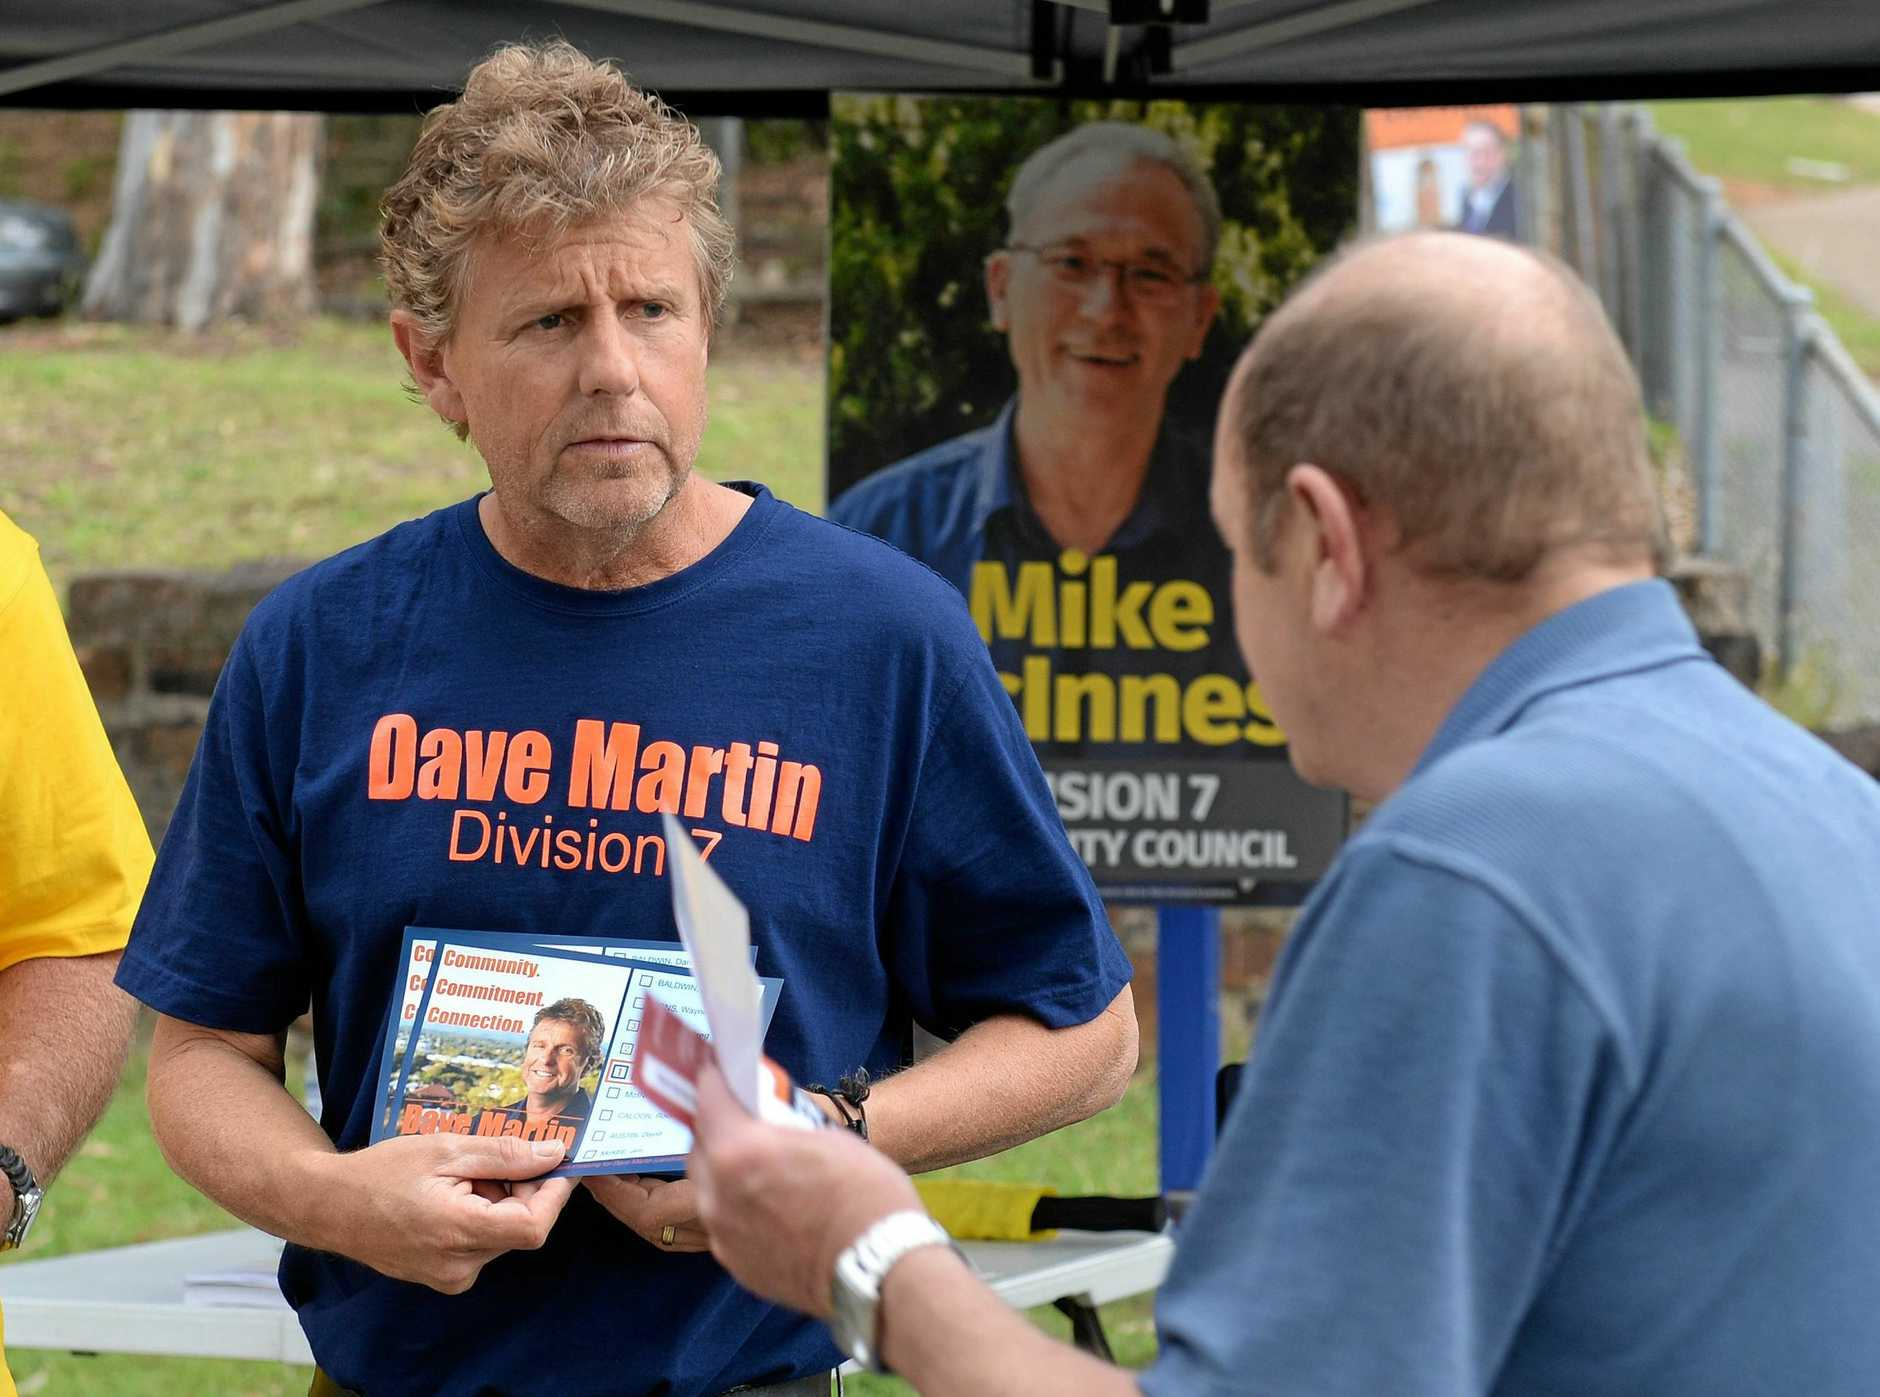 Ipswich City Council Division 7 by-election. Successful candidate Dave Martin.